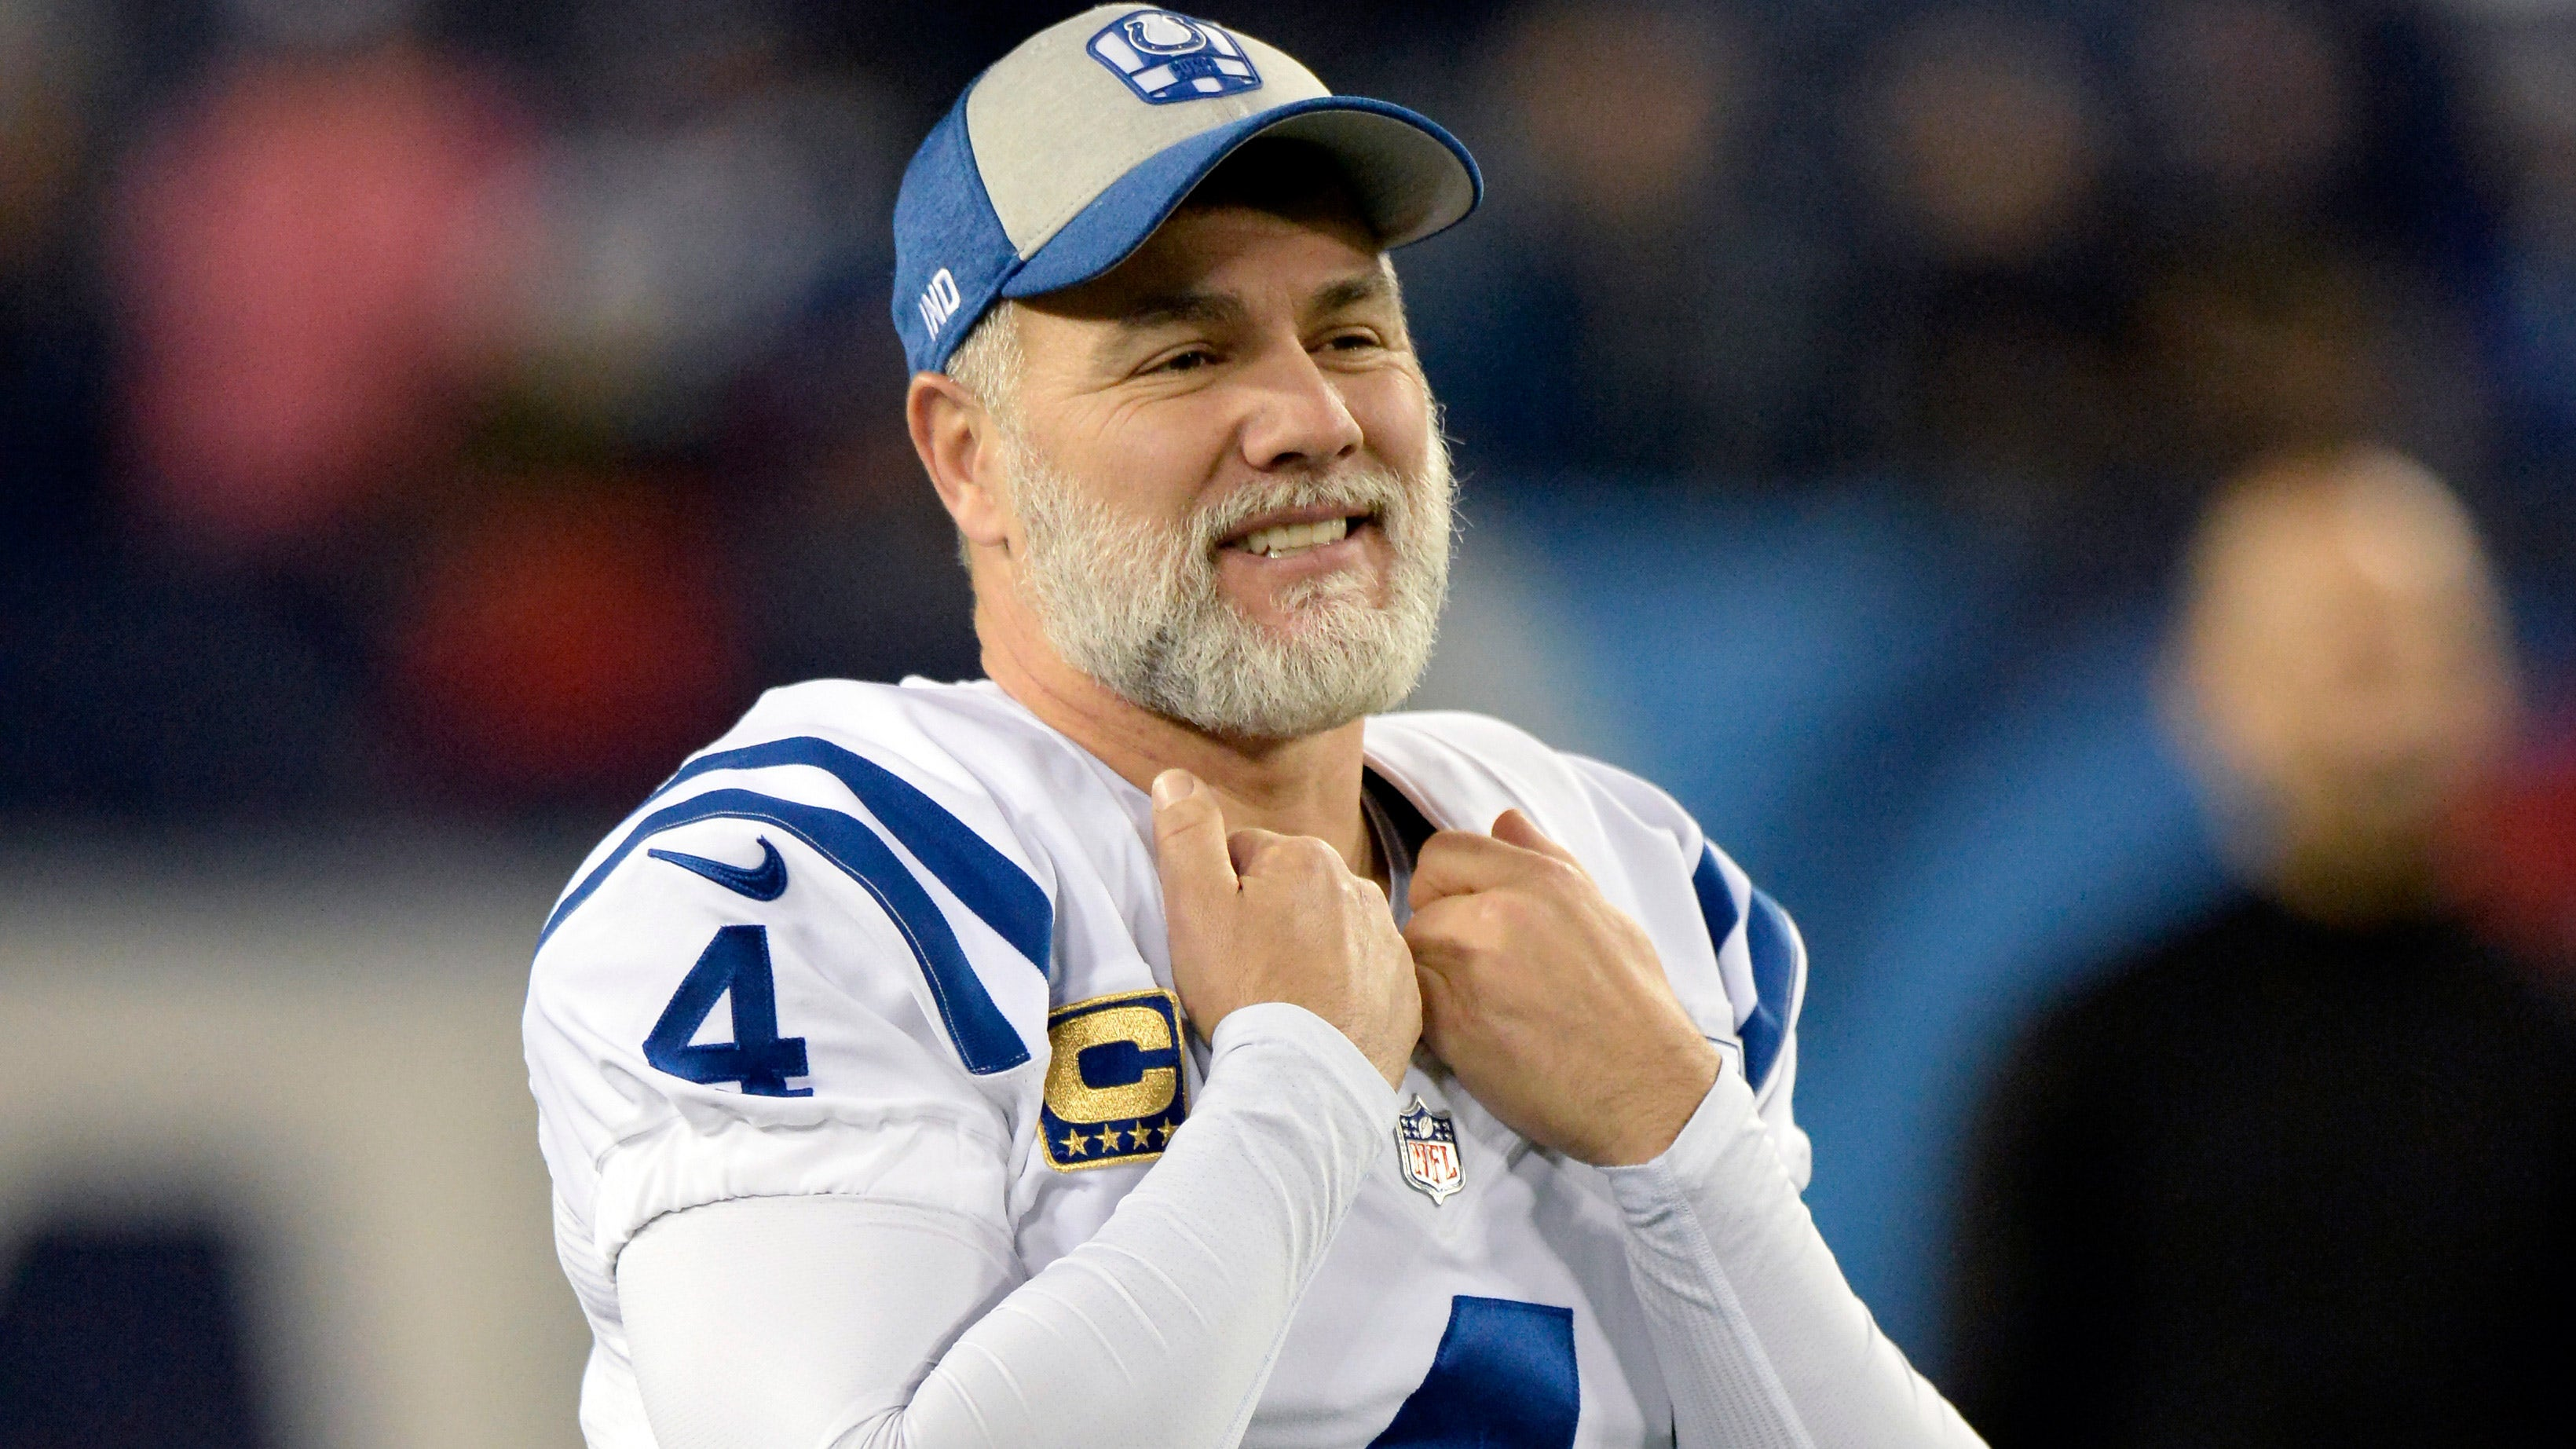 Colts Kicker Vinatieri Begins Quest For Fifth Super Bowl Crown Fox Sports